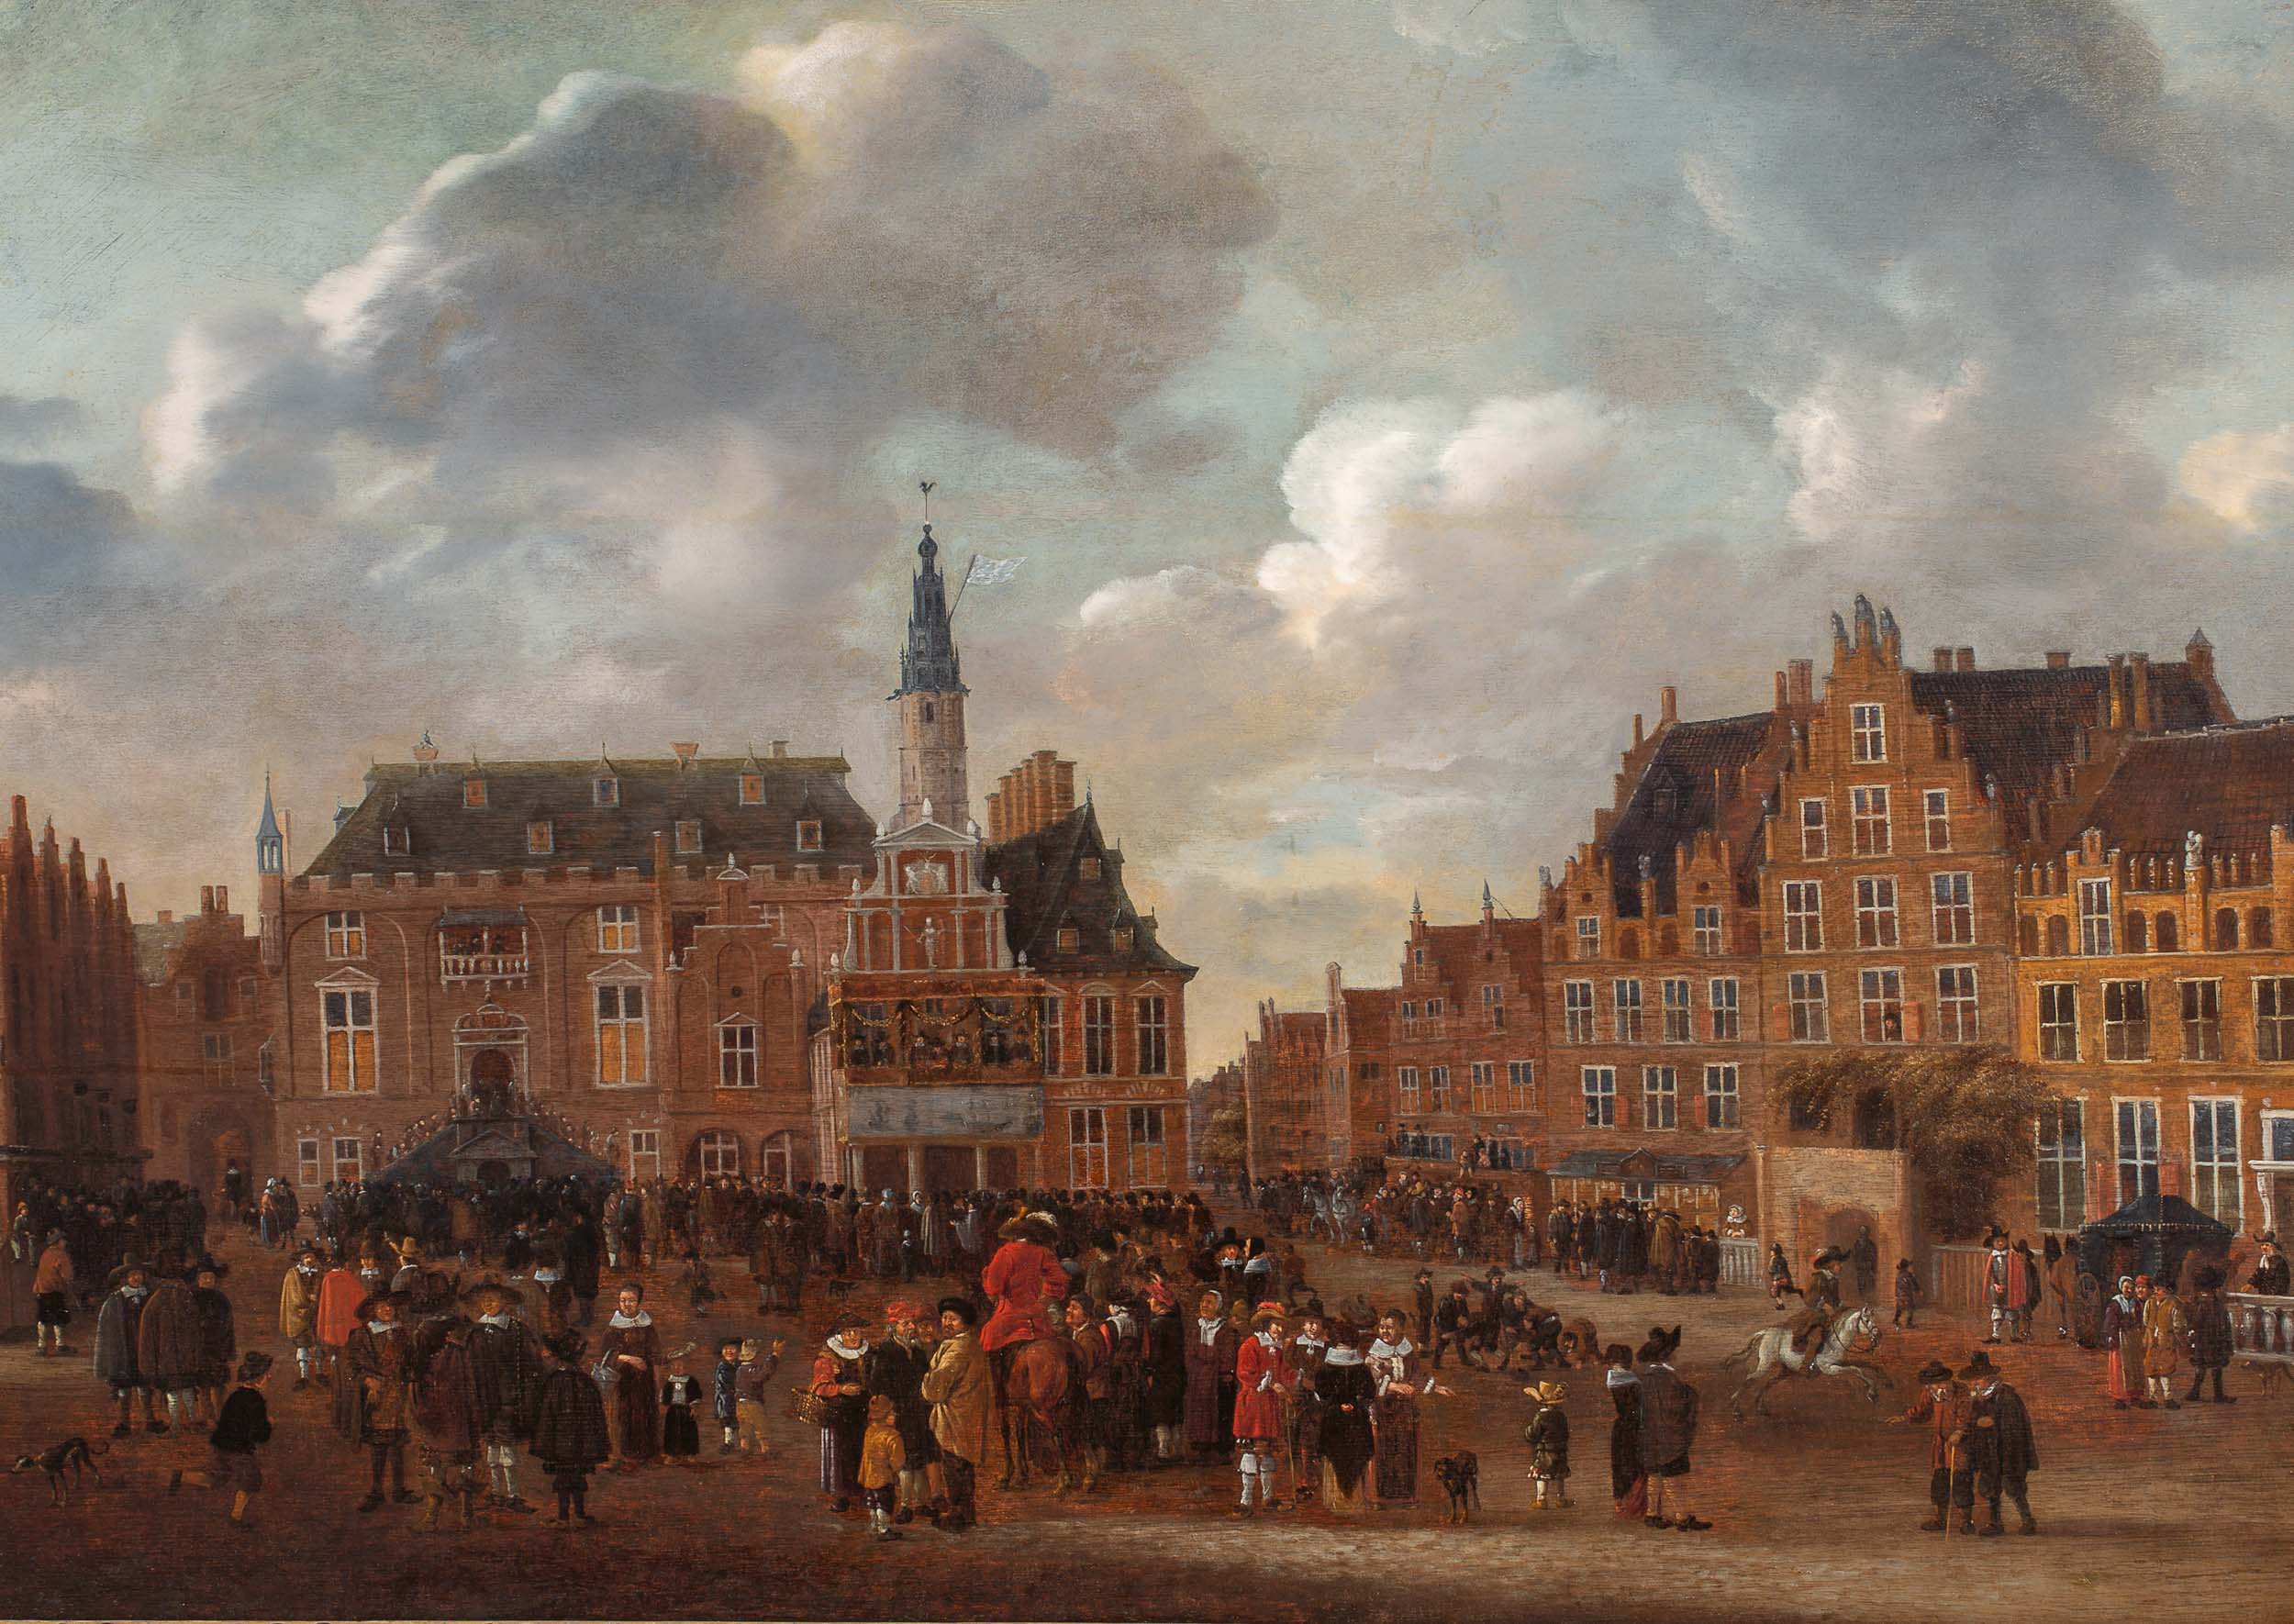 The Announcement of the Peace Treaty of Münster in 1648 from the balcony of the Town Hall of Haarlem